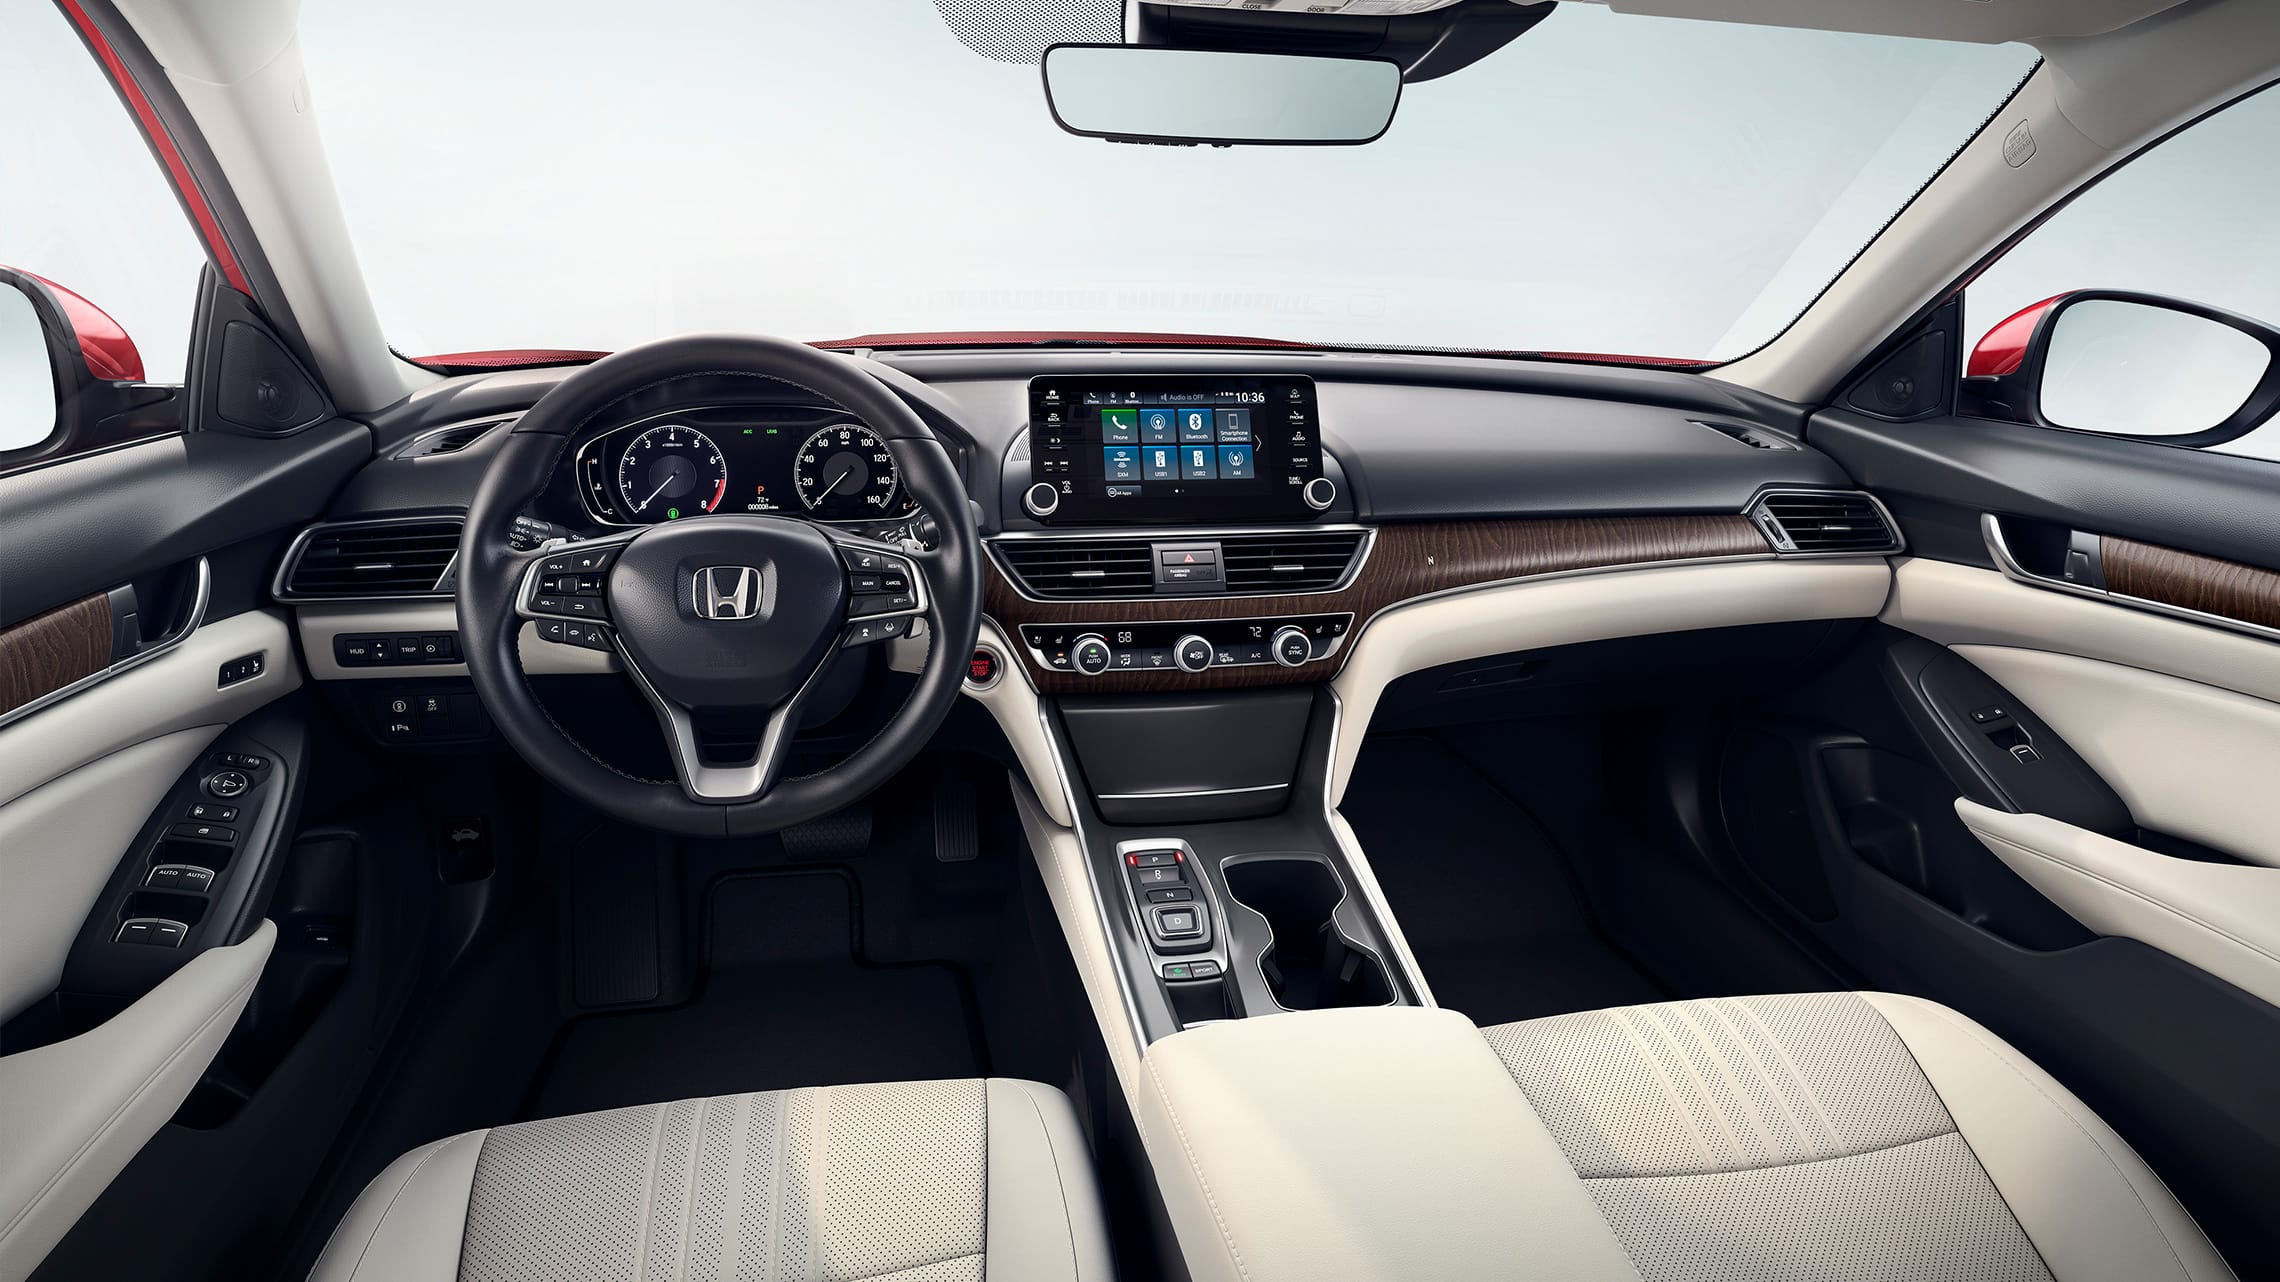 Interior view of front seats and dashboard in the 2020 Honda Accord Touring 2.0T with Ivory Leather.